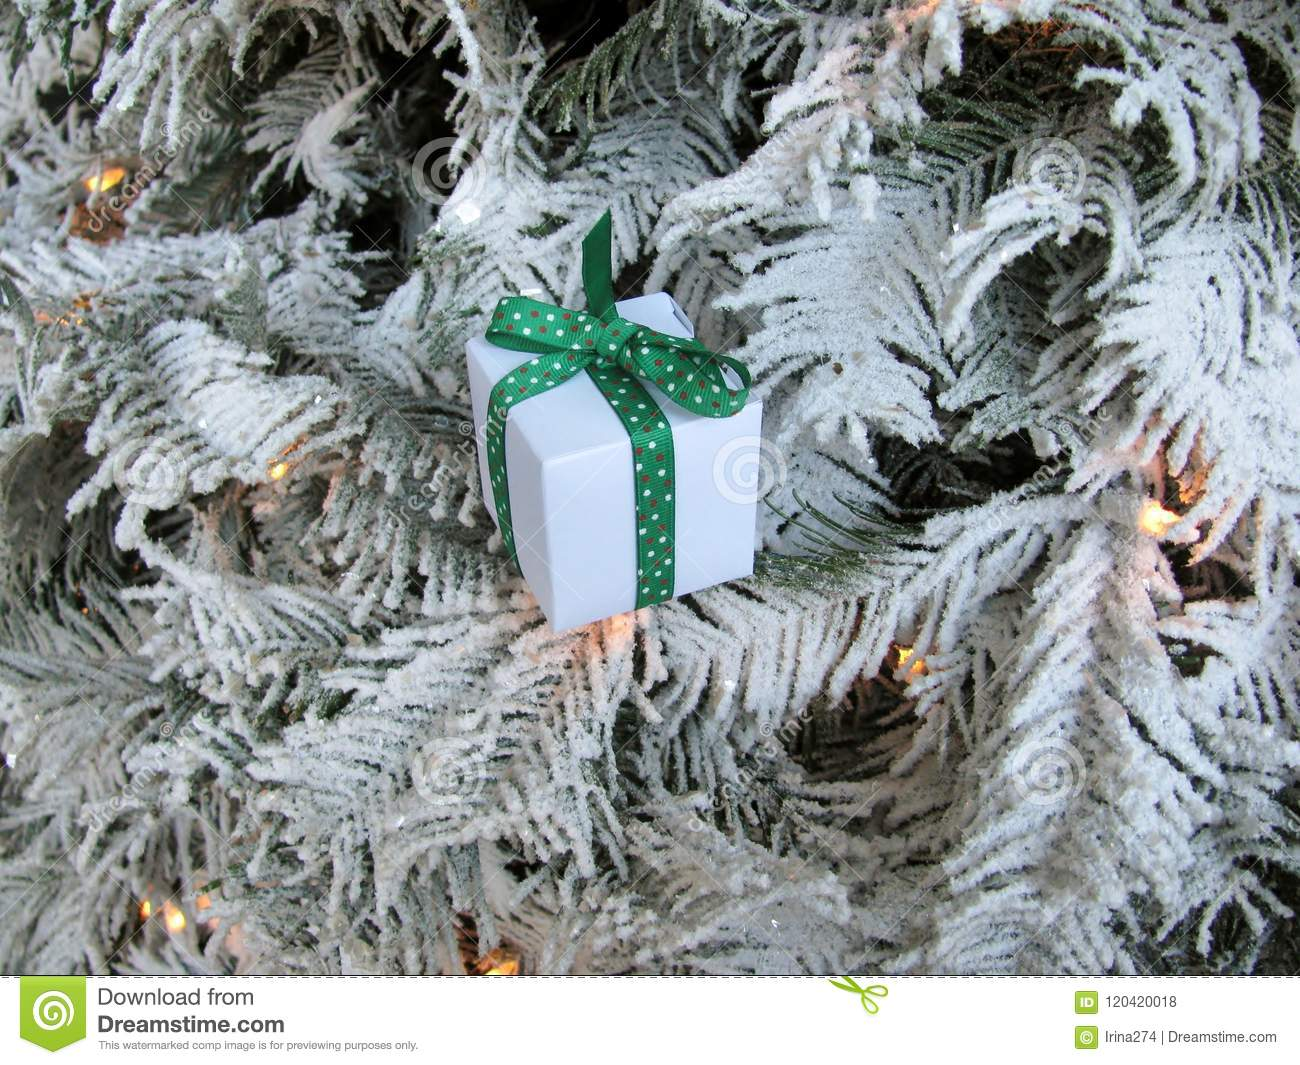 Rustic Christmas Decoration Hanging Over White Tree Stock Photo Image Of Ribbon Rustic 120420018